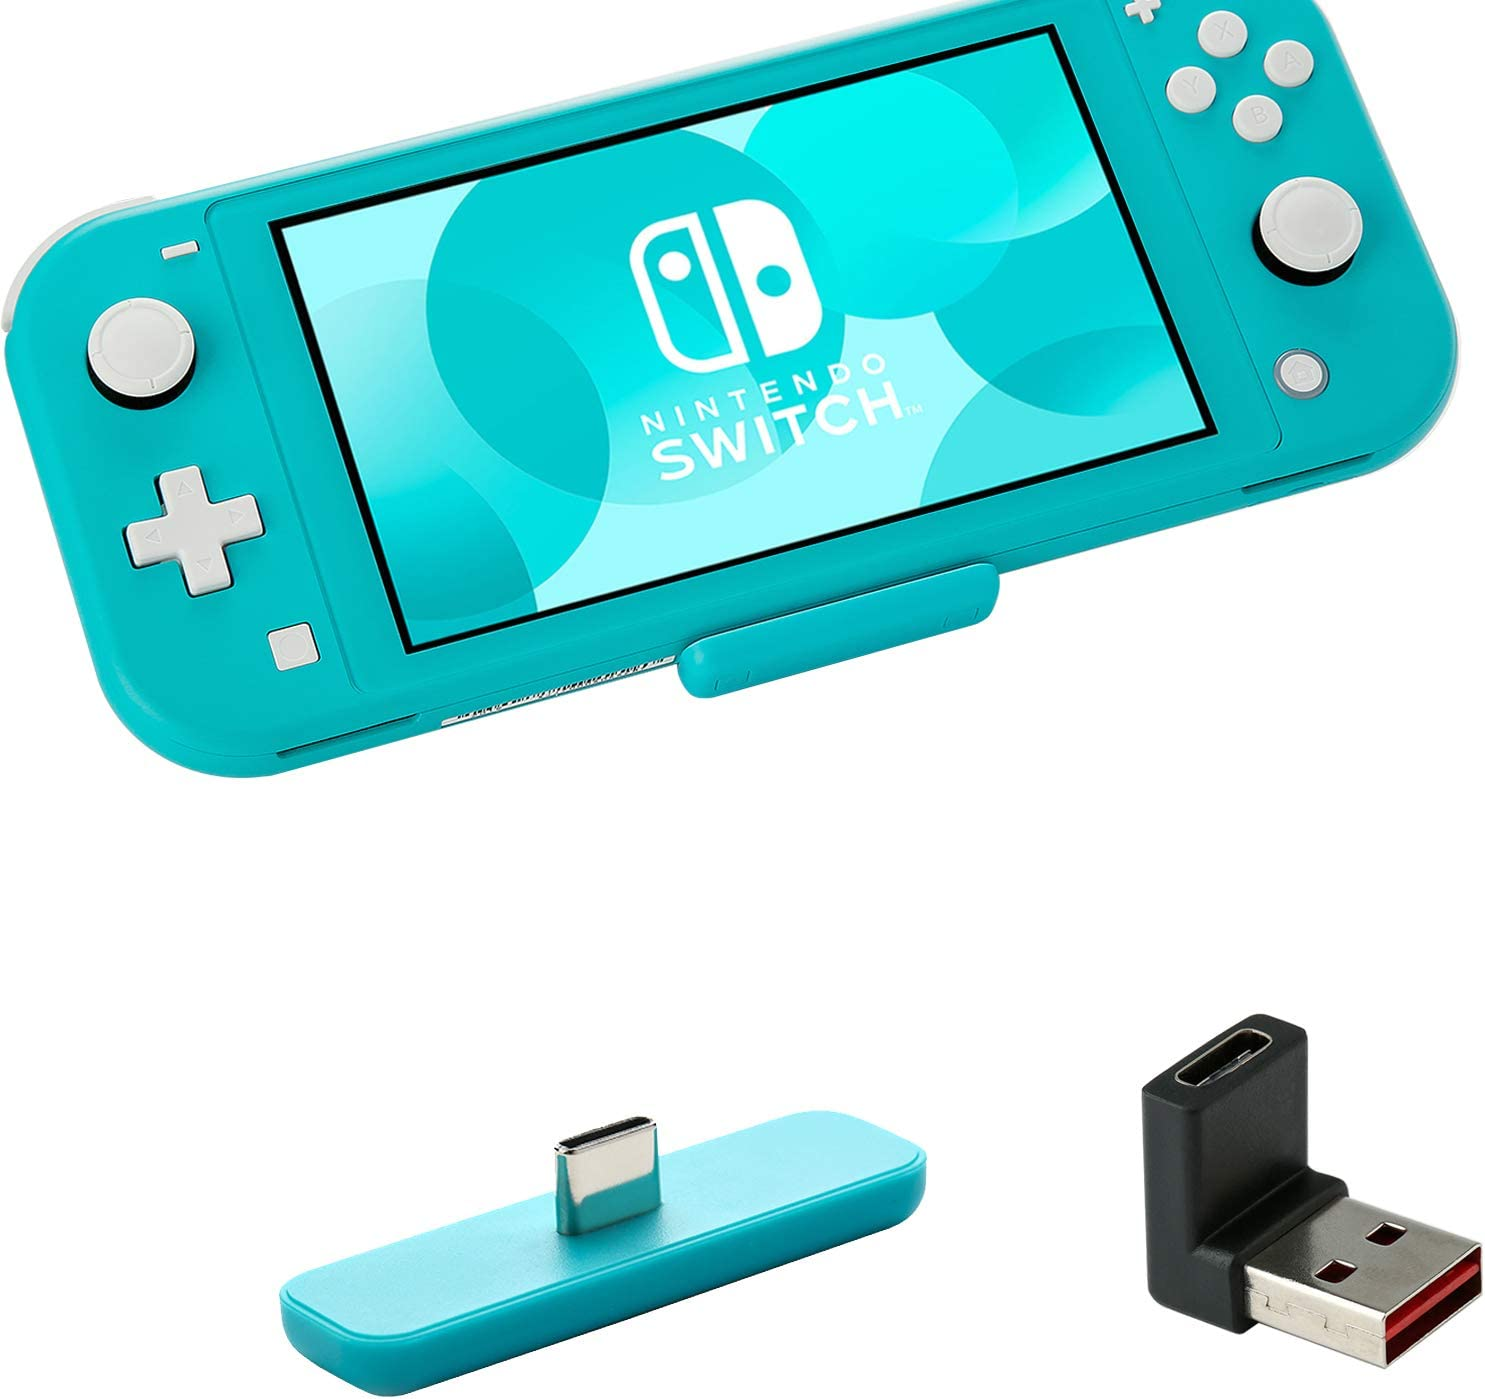 GULIkit Route Air Adaptador Bluetooth para Nintendo Switch/Switch Lite PS4 PC, Transmisor Bluetooth Audio con aptX de Baja Latencia Compatible con Airpods Bose Sony y Auriculares Bluetooth - Azul